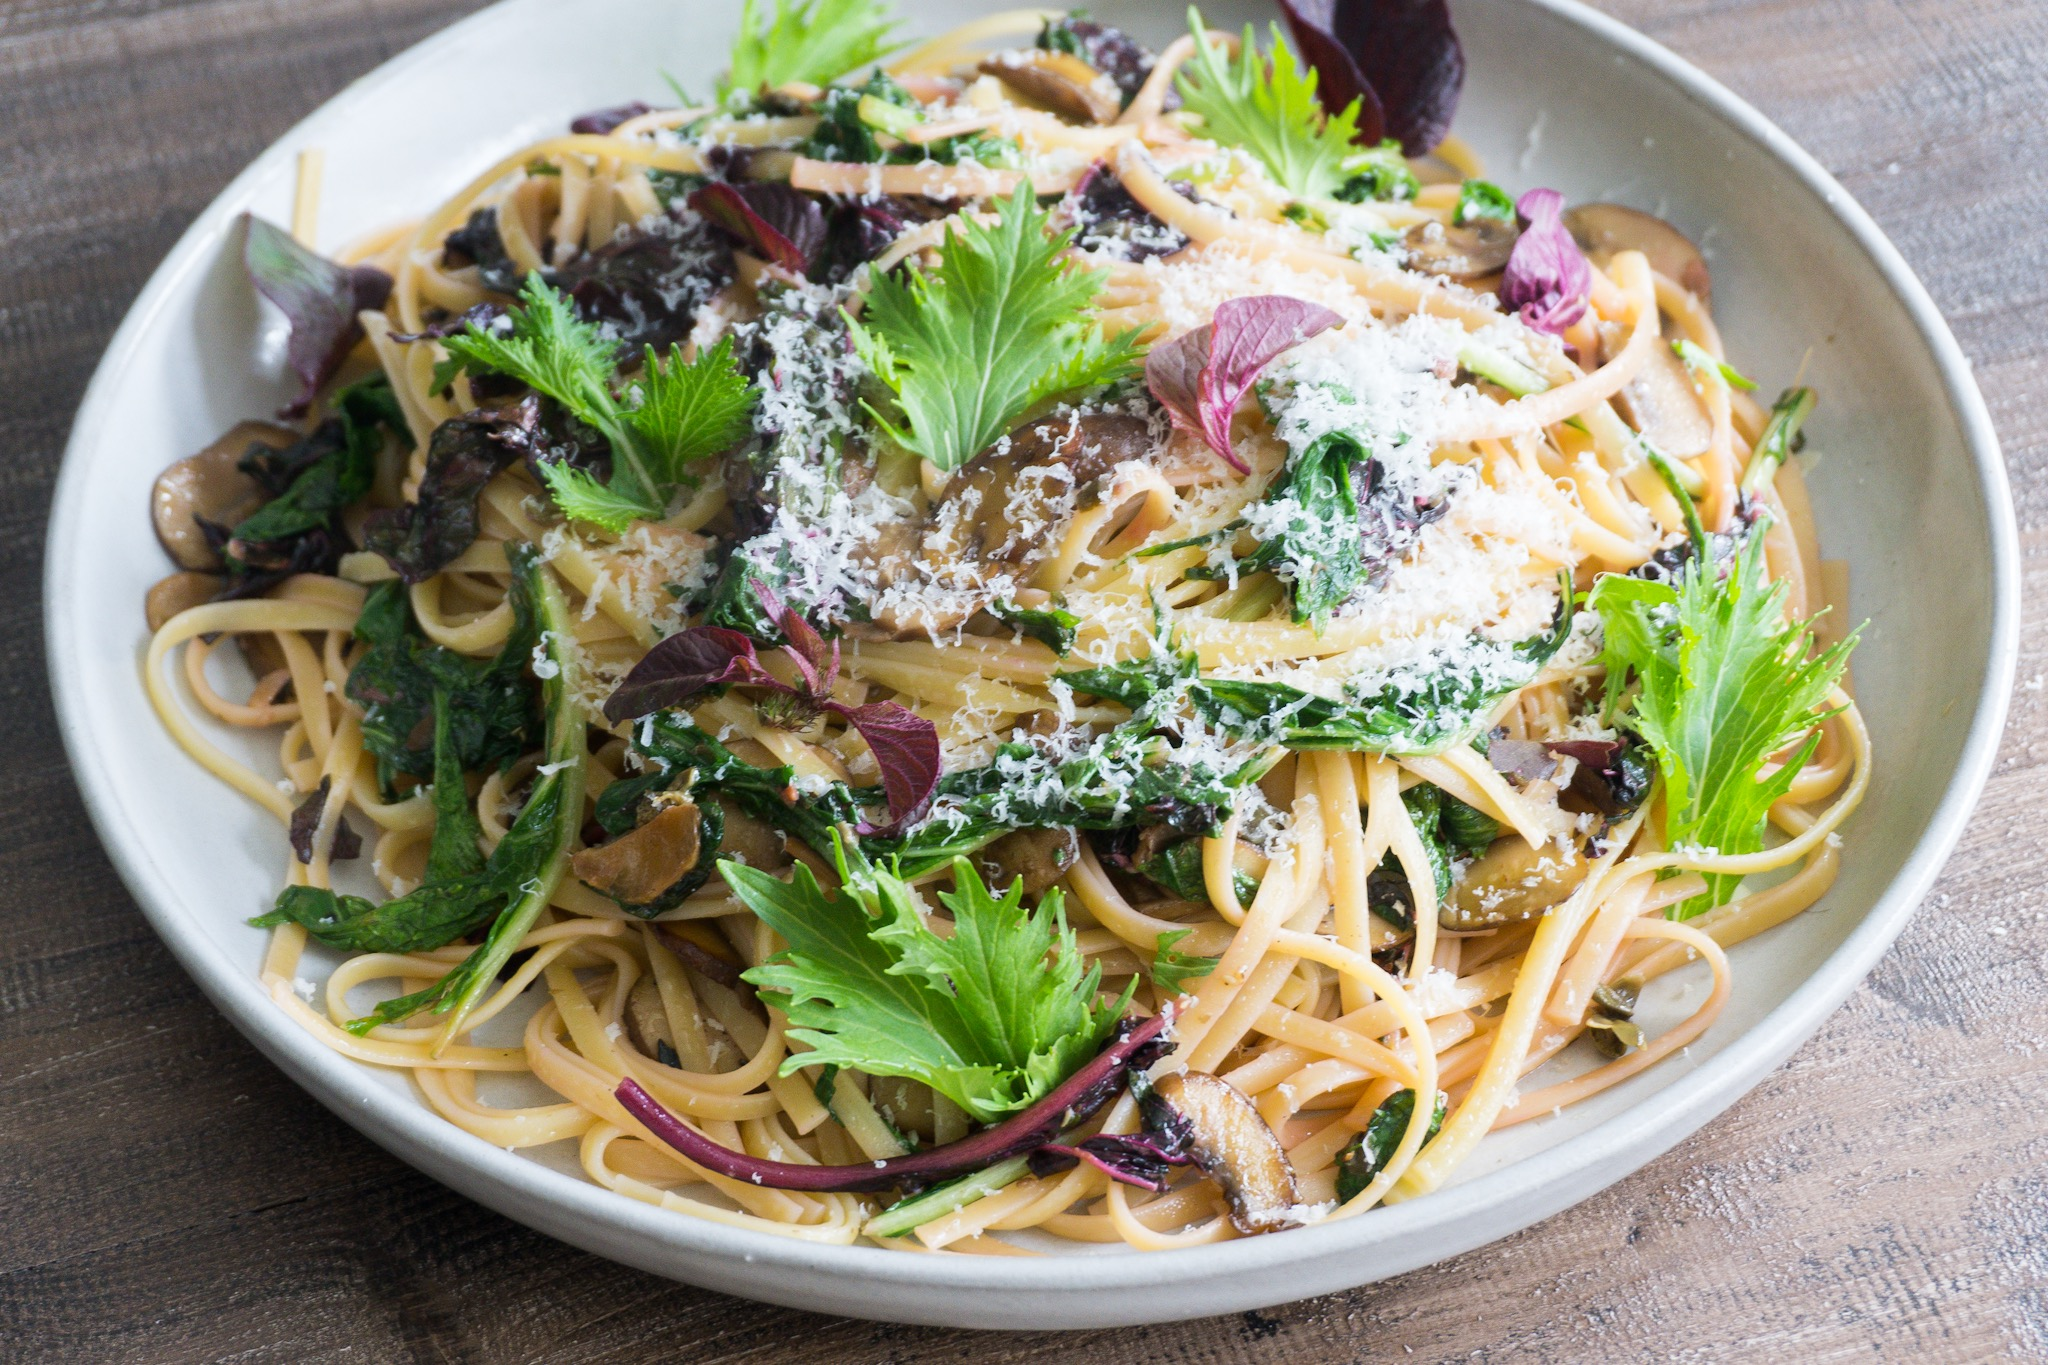 Linguine with Mushrooms and Greens